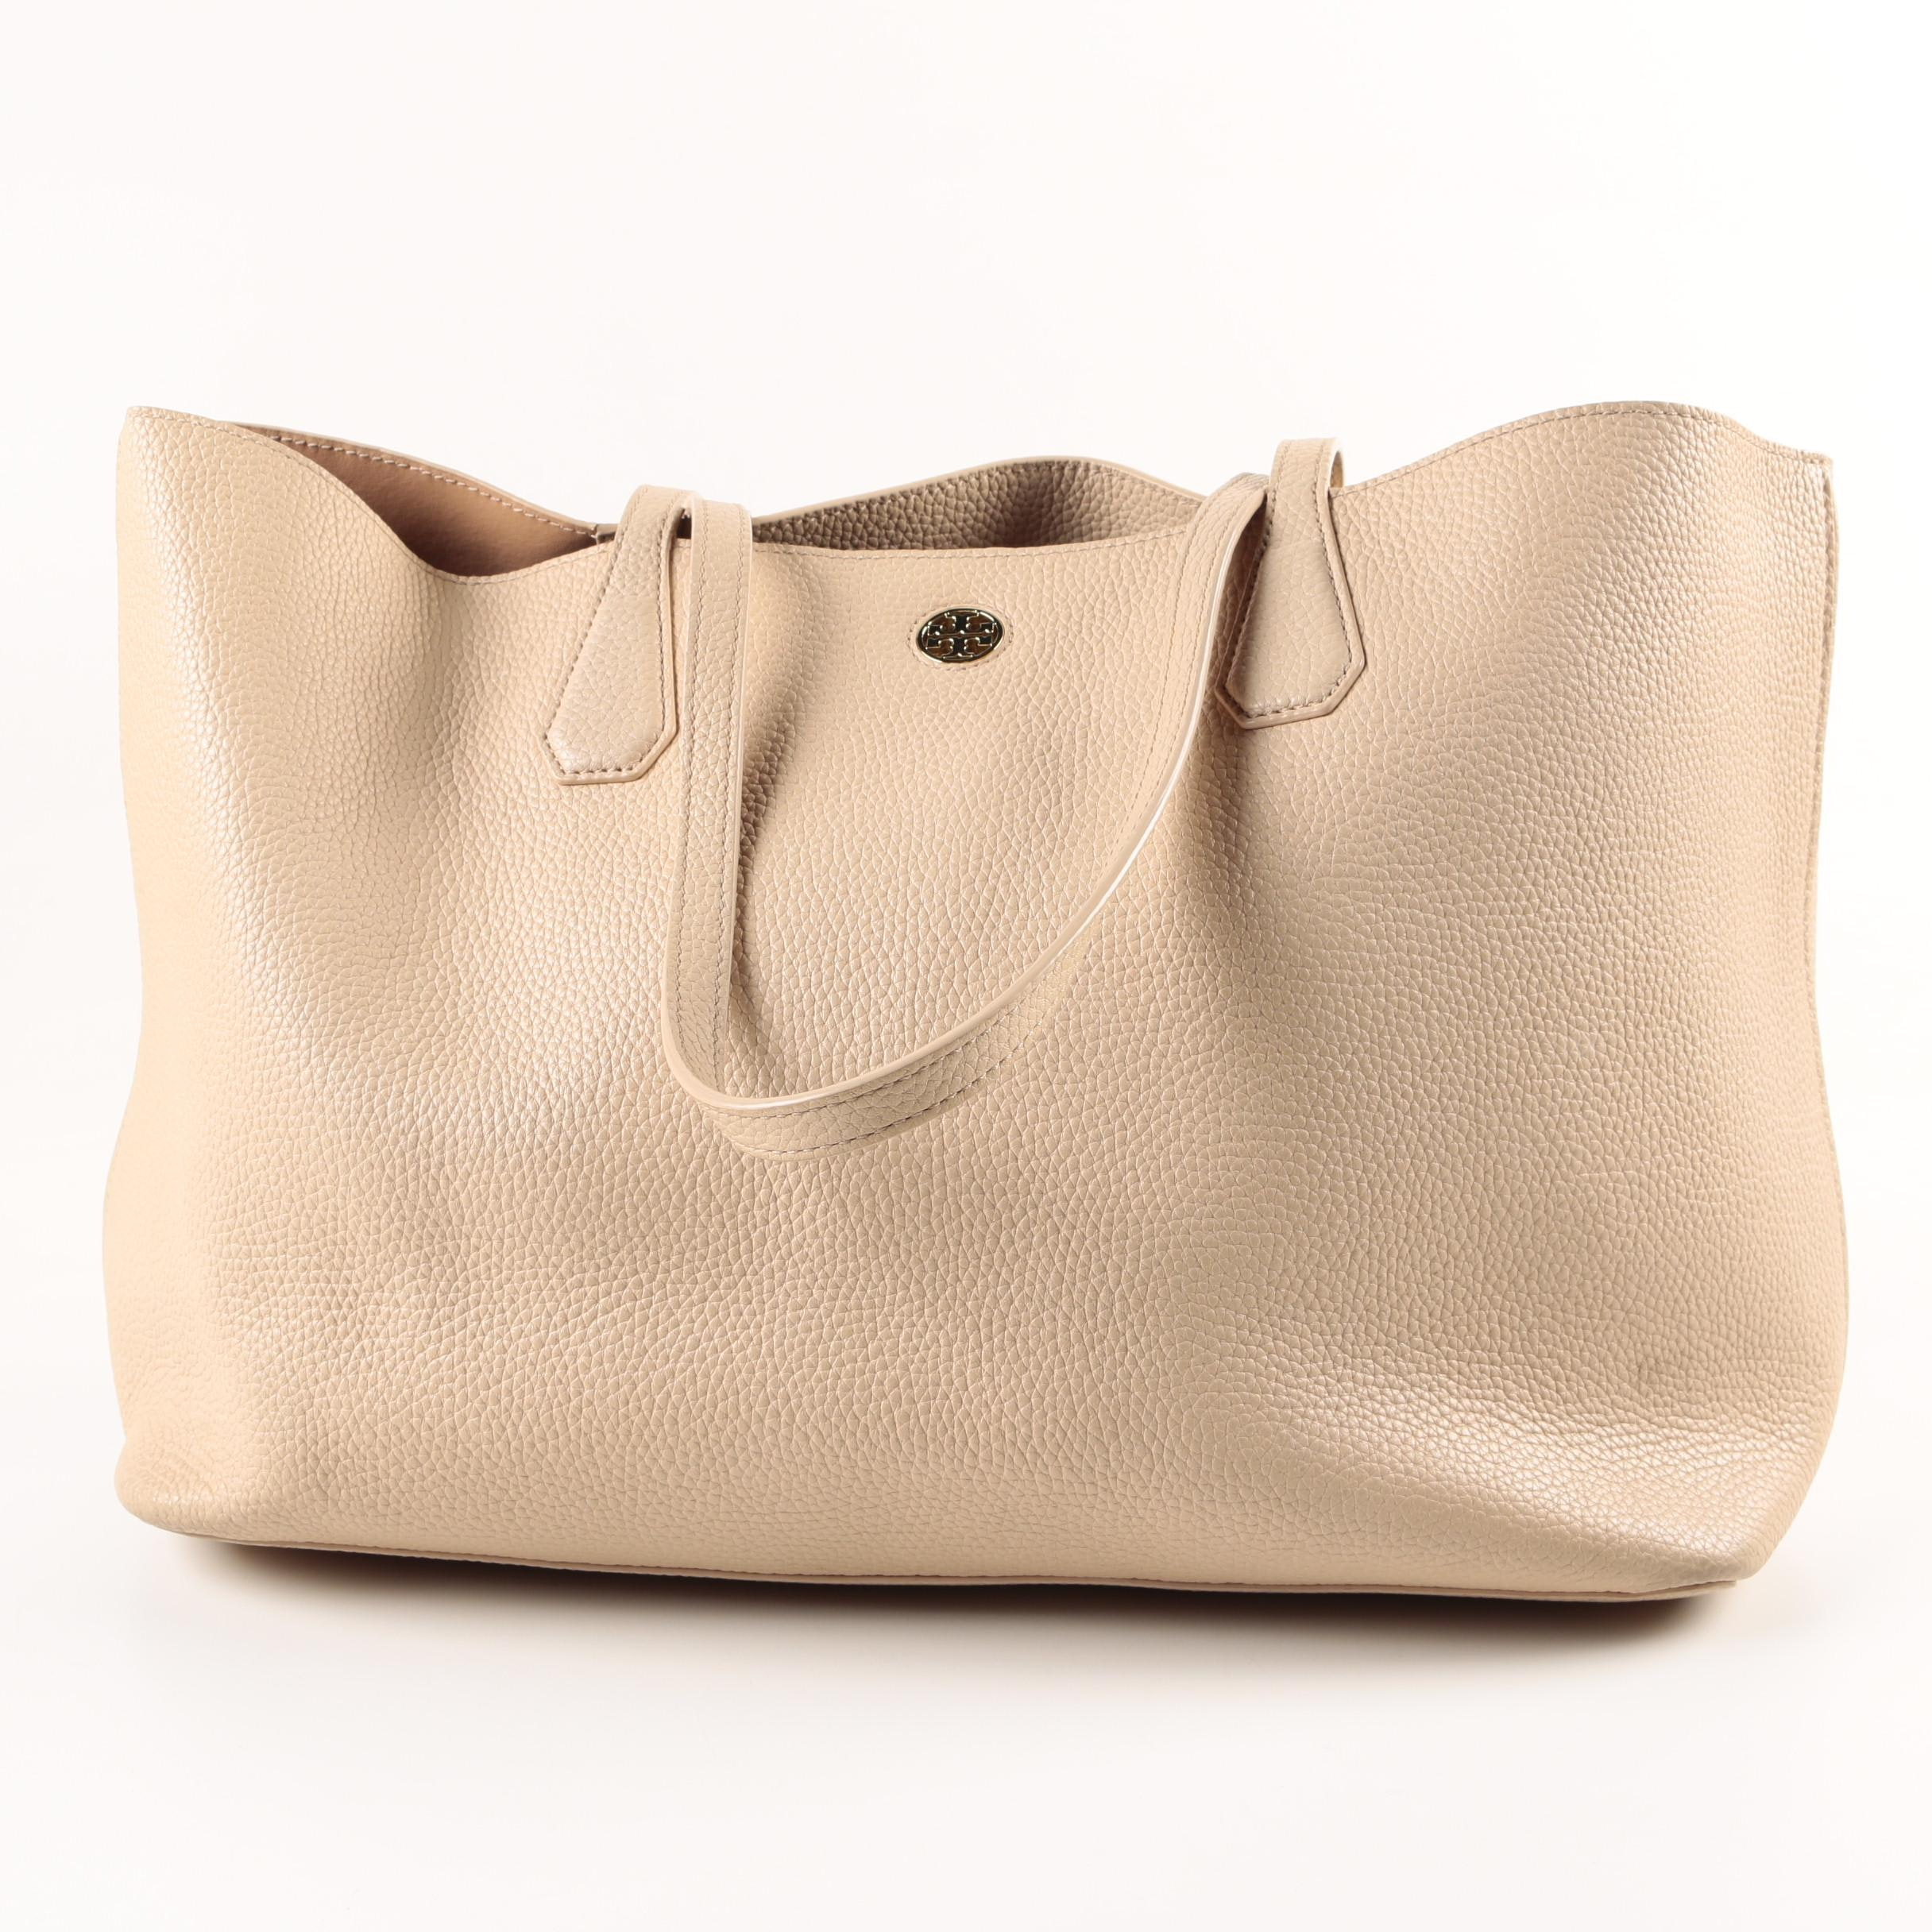 Tory Burch Pebble Grained Leather Tote